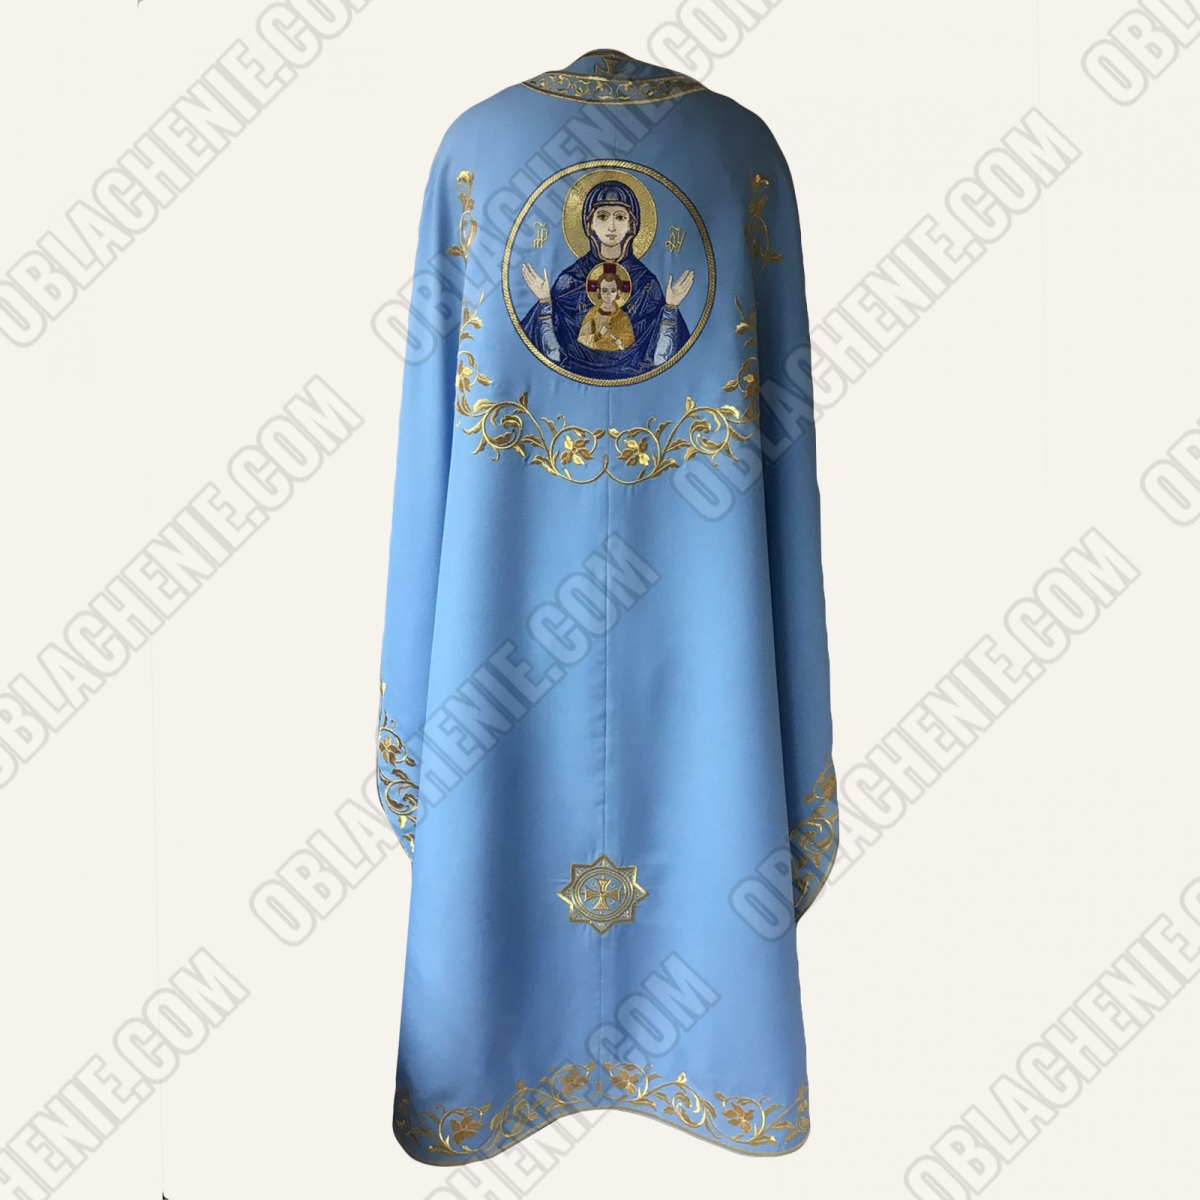 EMBROIDERED PRIEST'S VESTMENTS 11319